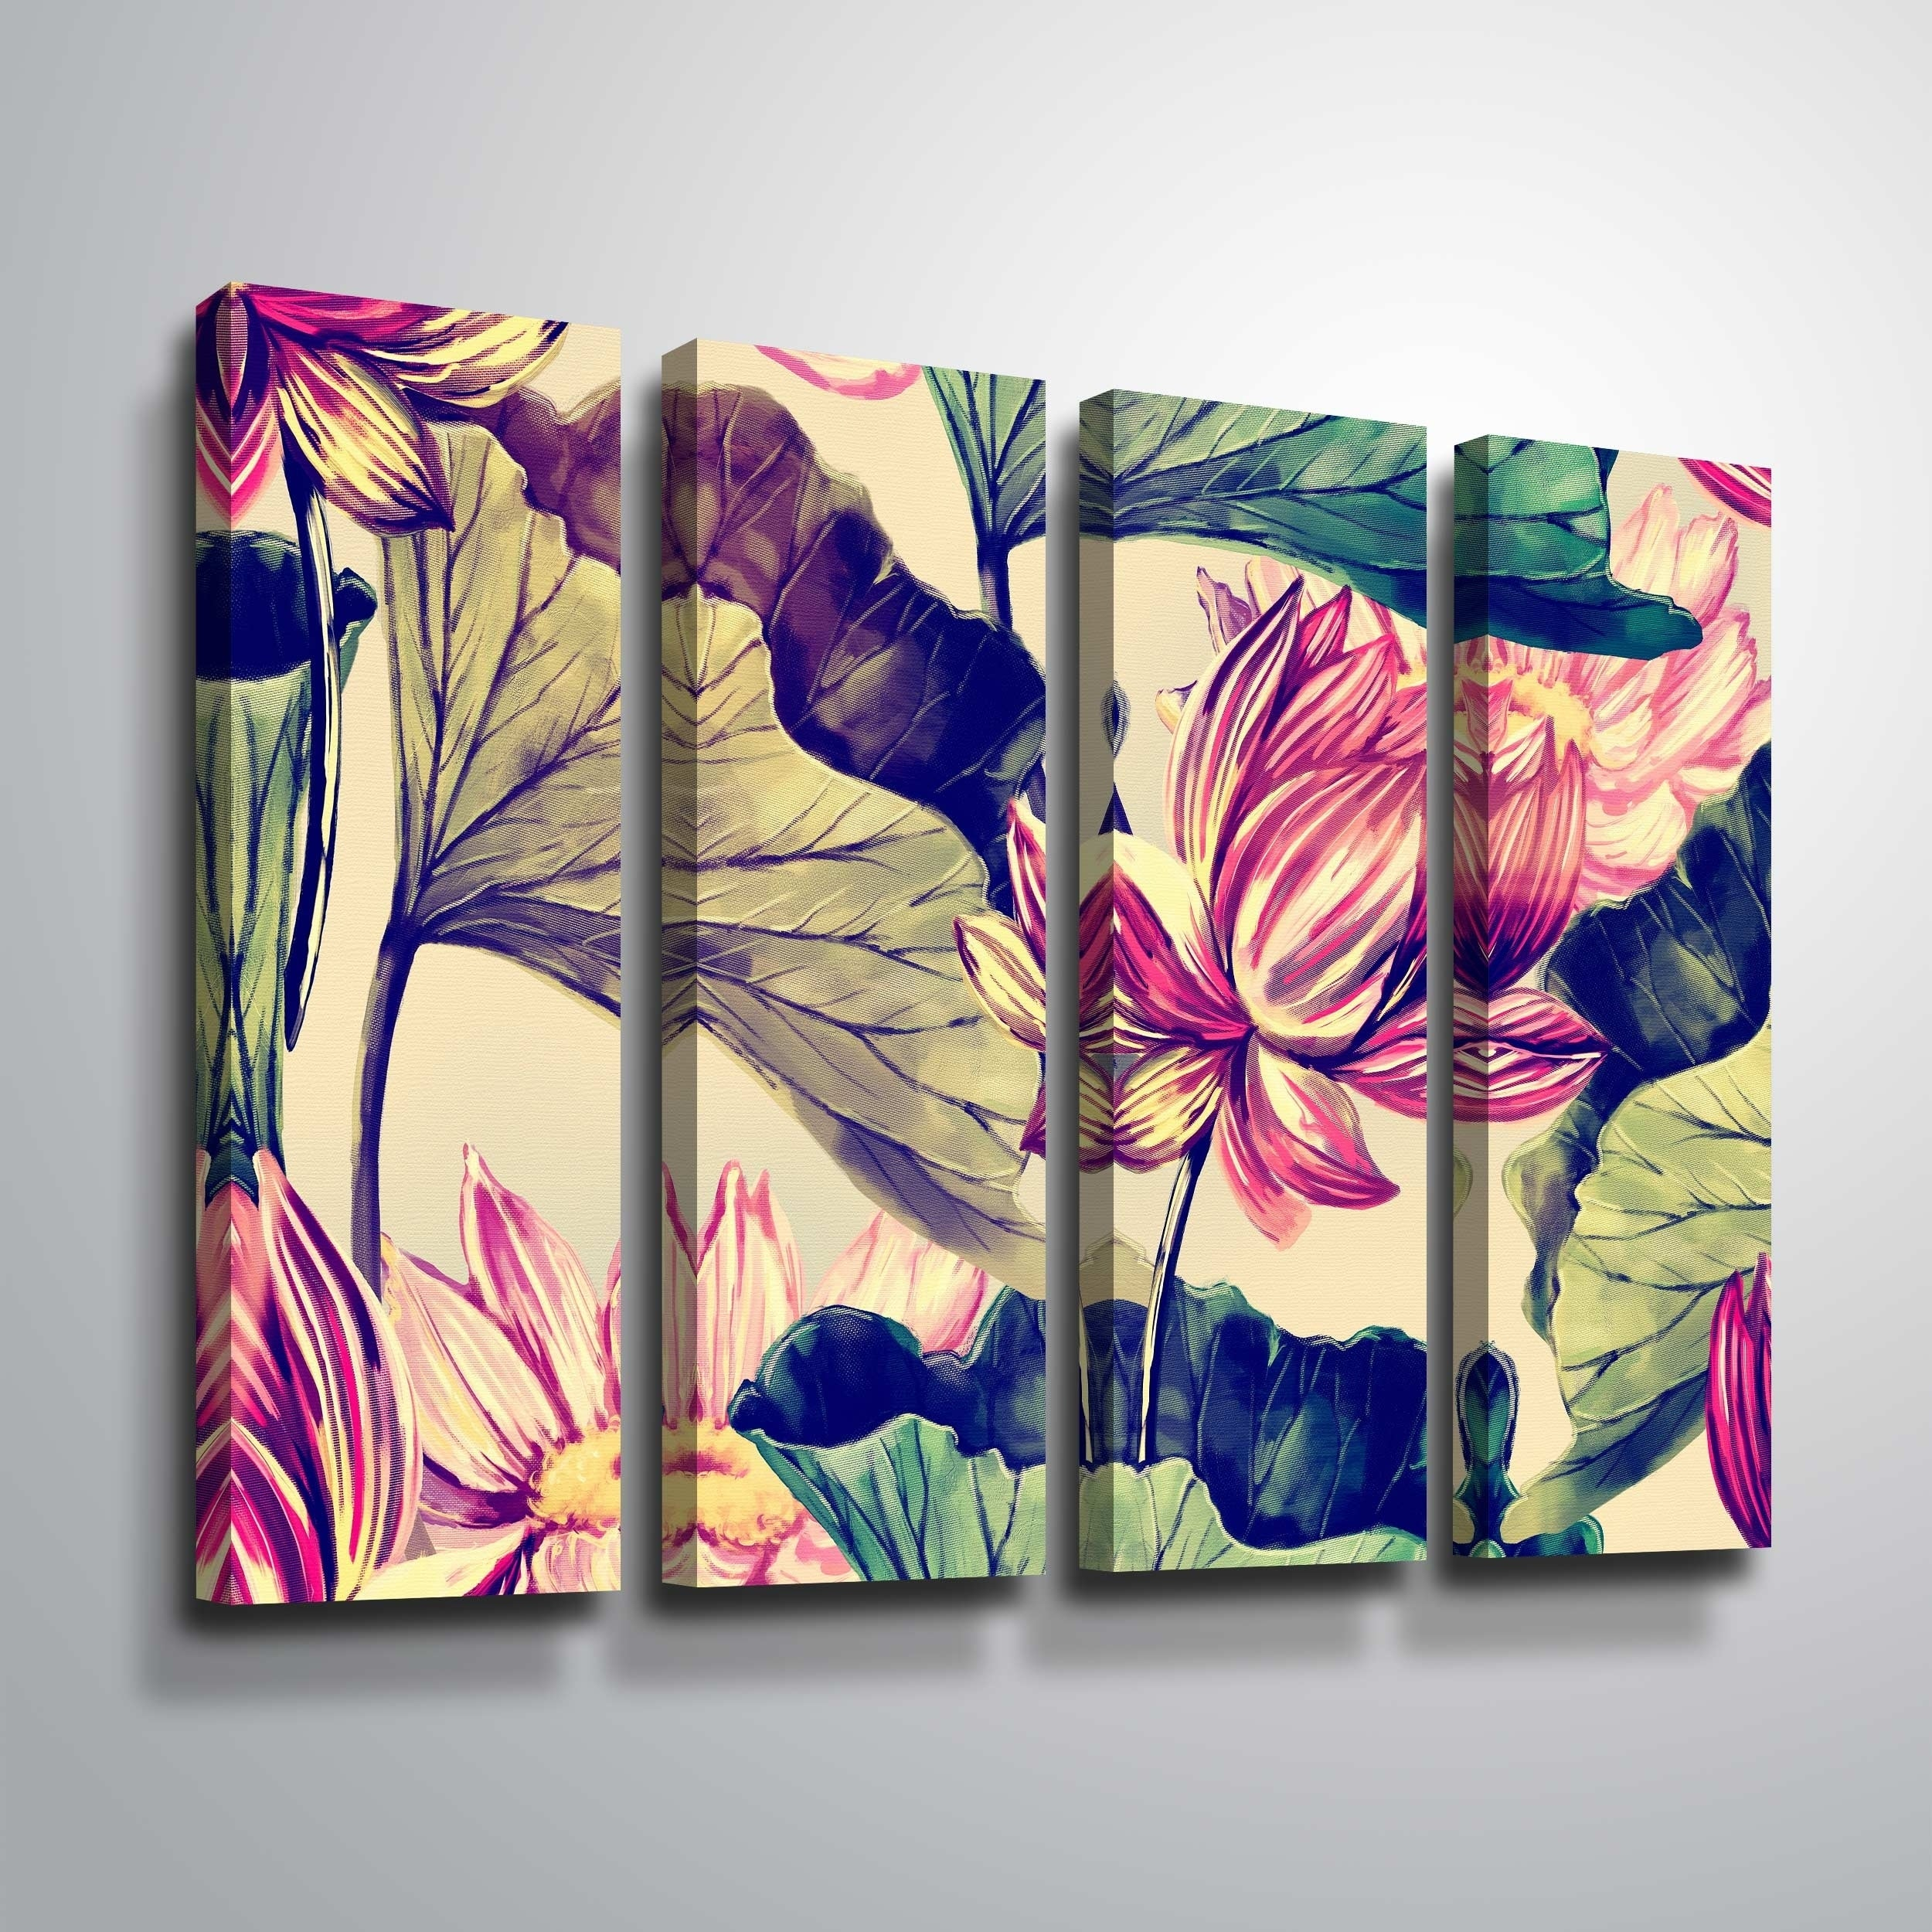 Artwall Water Lily 4 Piece Gallery Wrapped Canvas Set Overstock 25491441